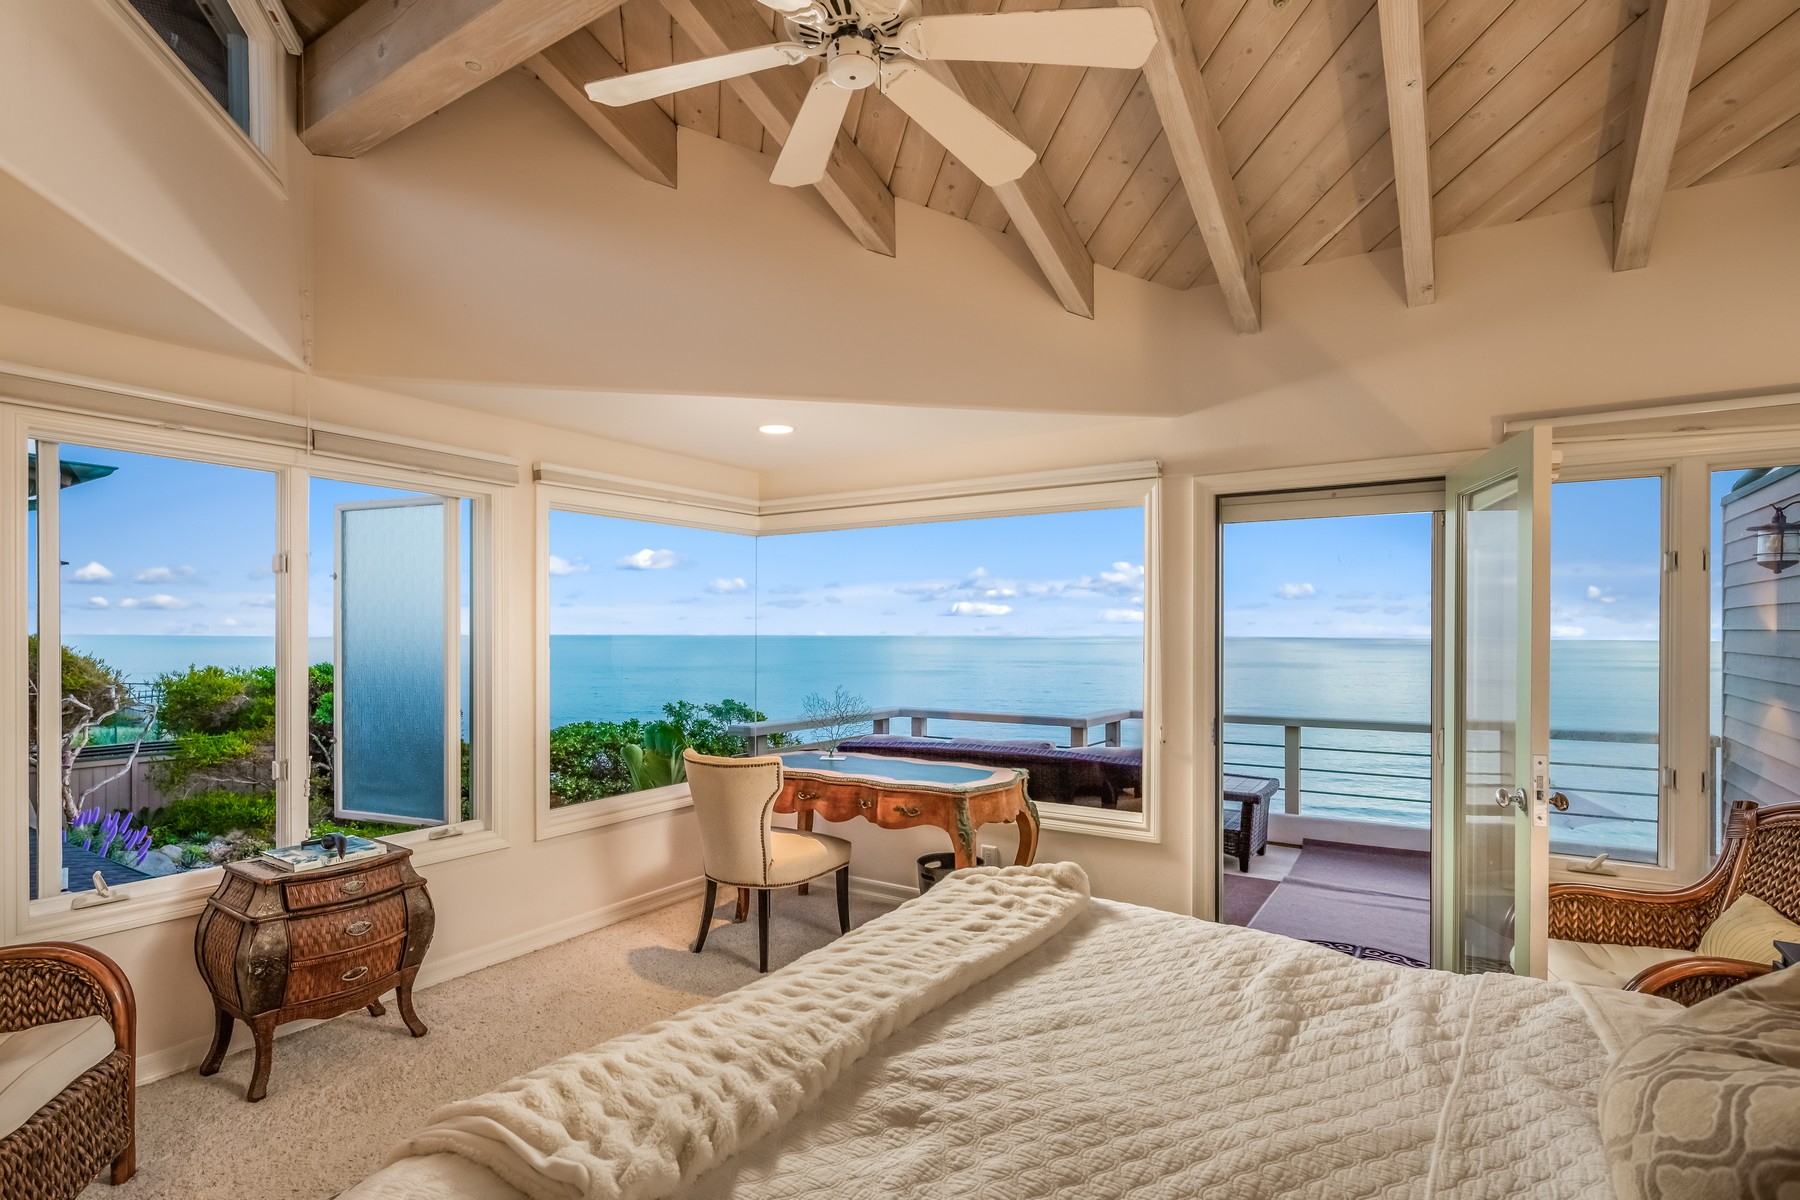 townhouses for Active at 550 4th Street Encinitas, California 92024 United States